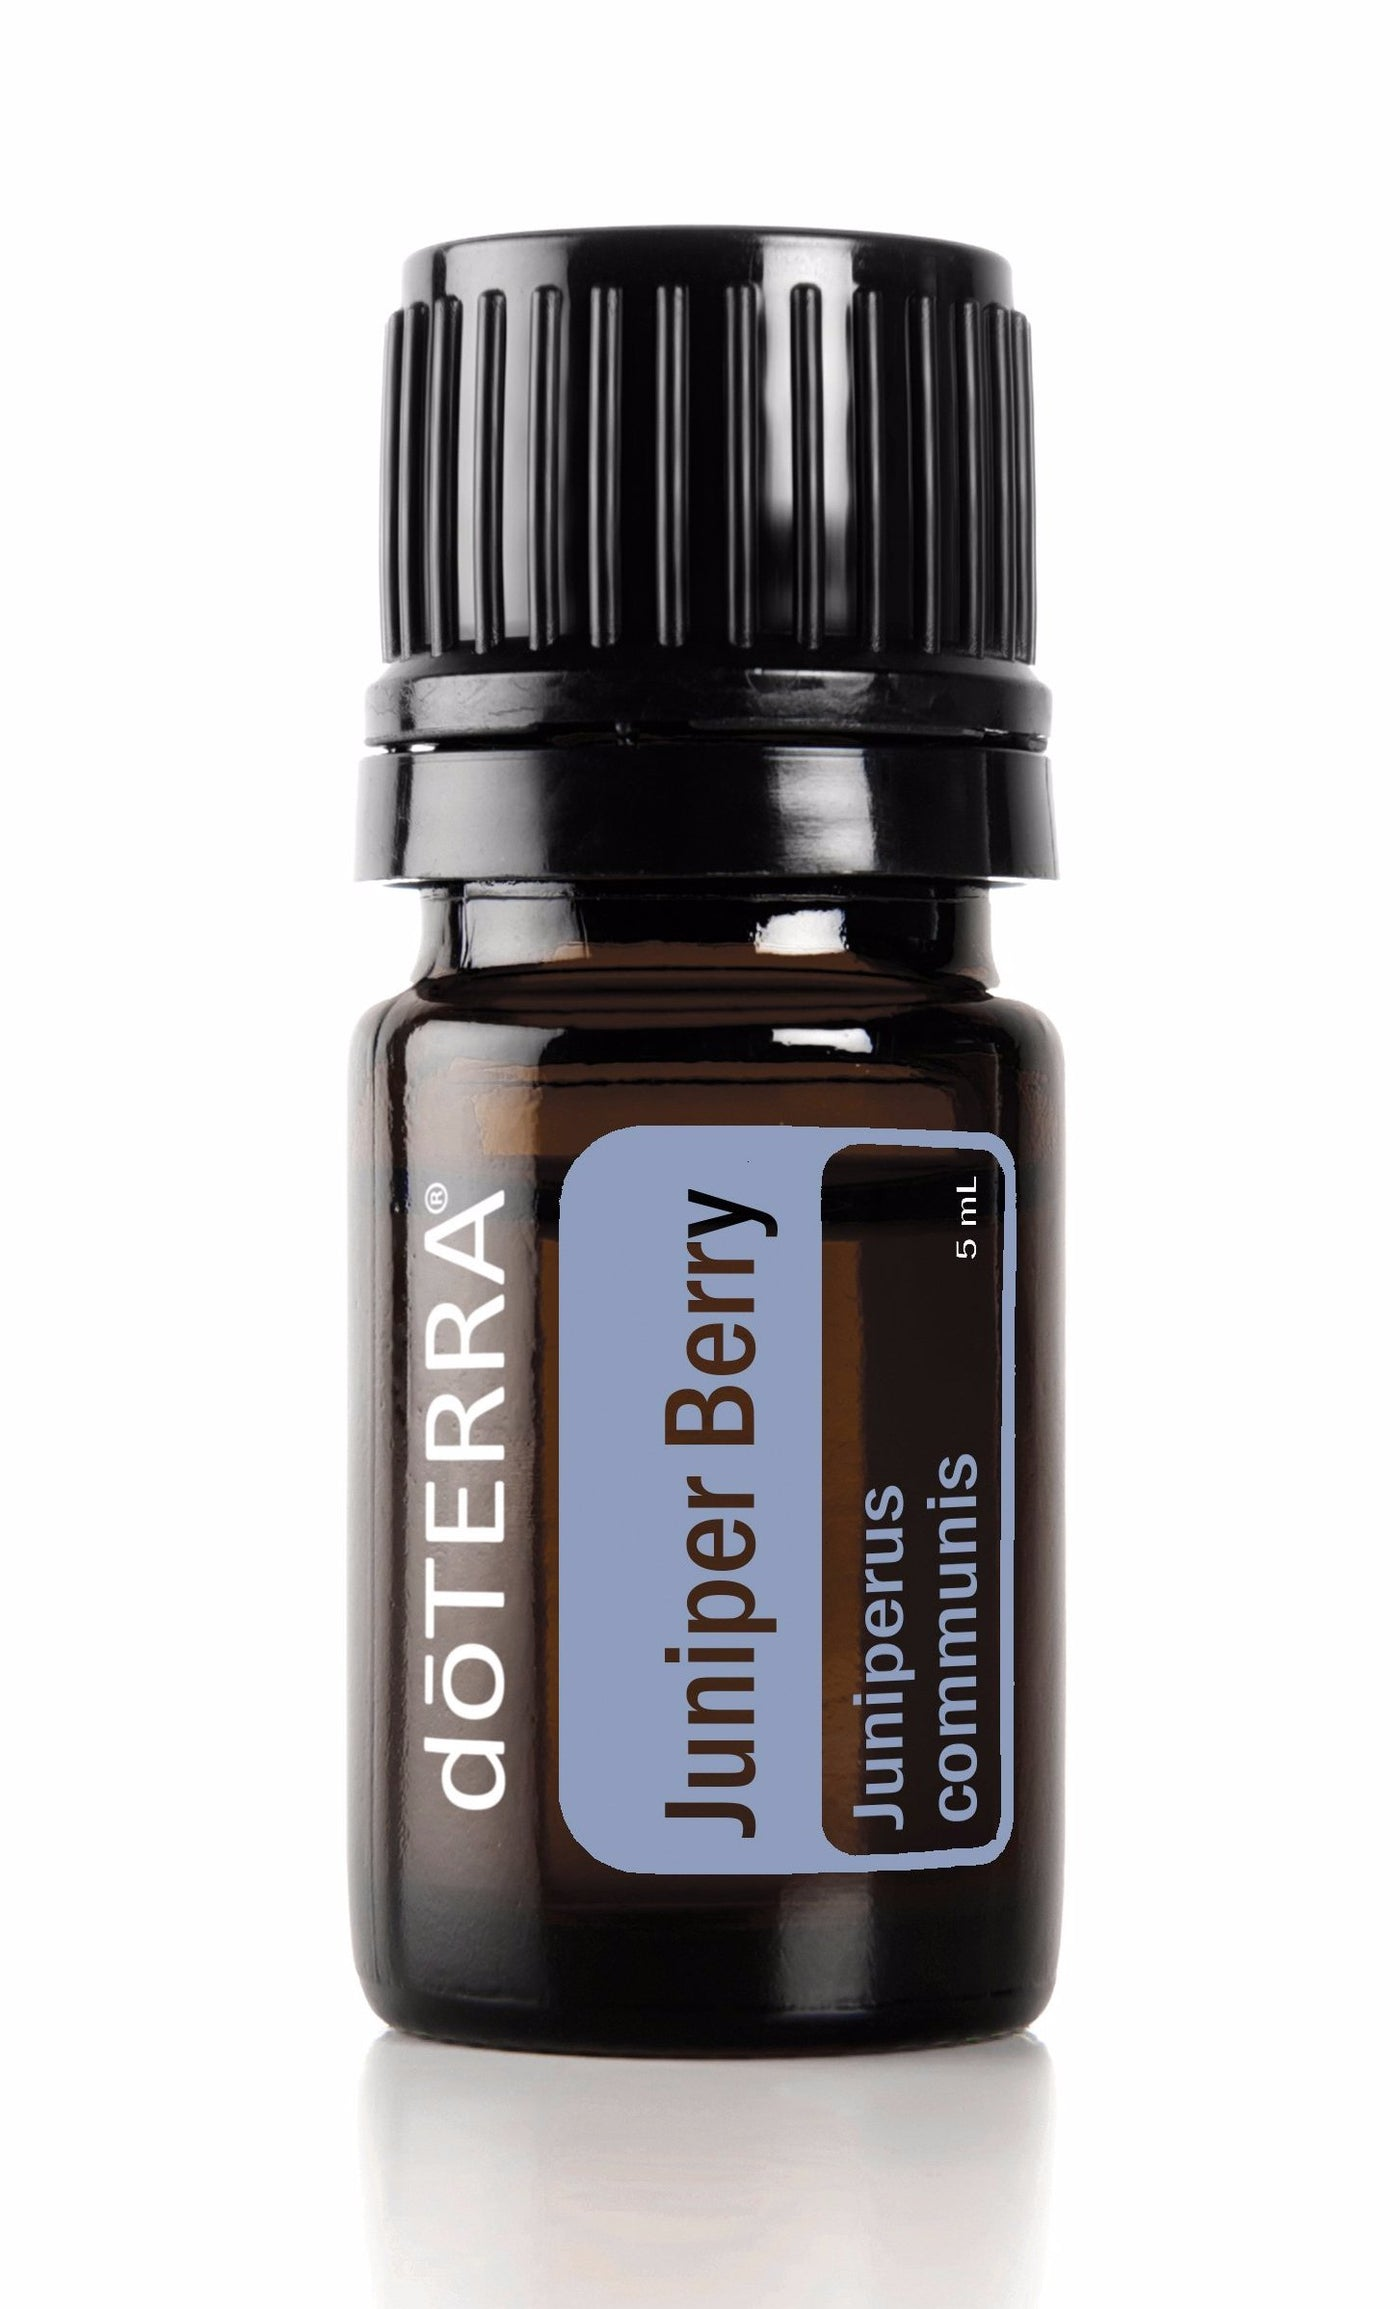 Dōterra Juniper Berry Essential Oil 5ml Do Essential Oils Dōterra Wellness Advocate Site